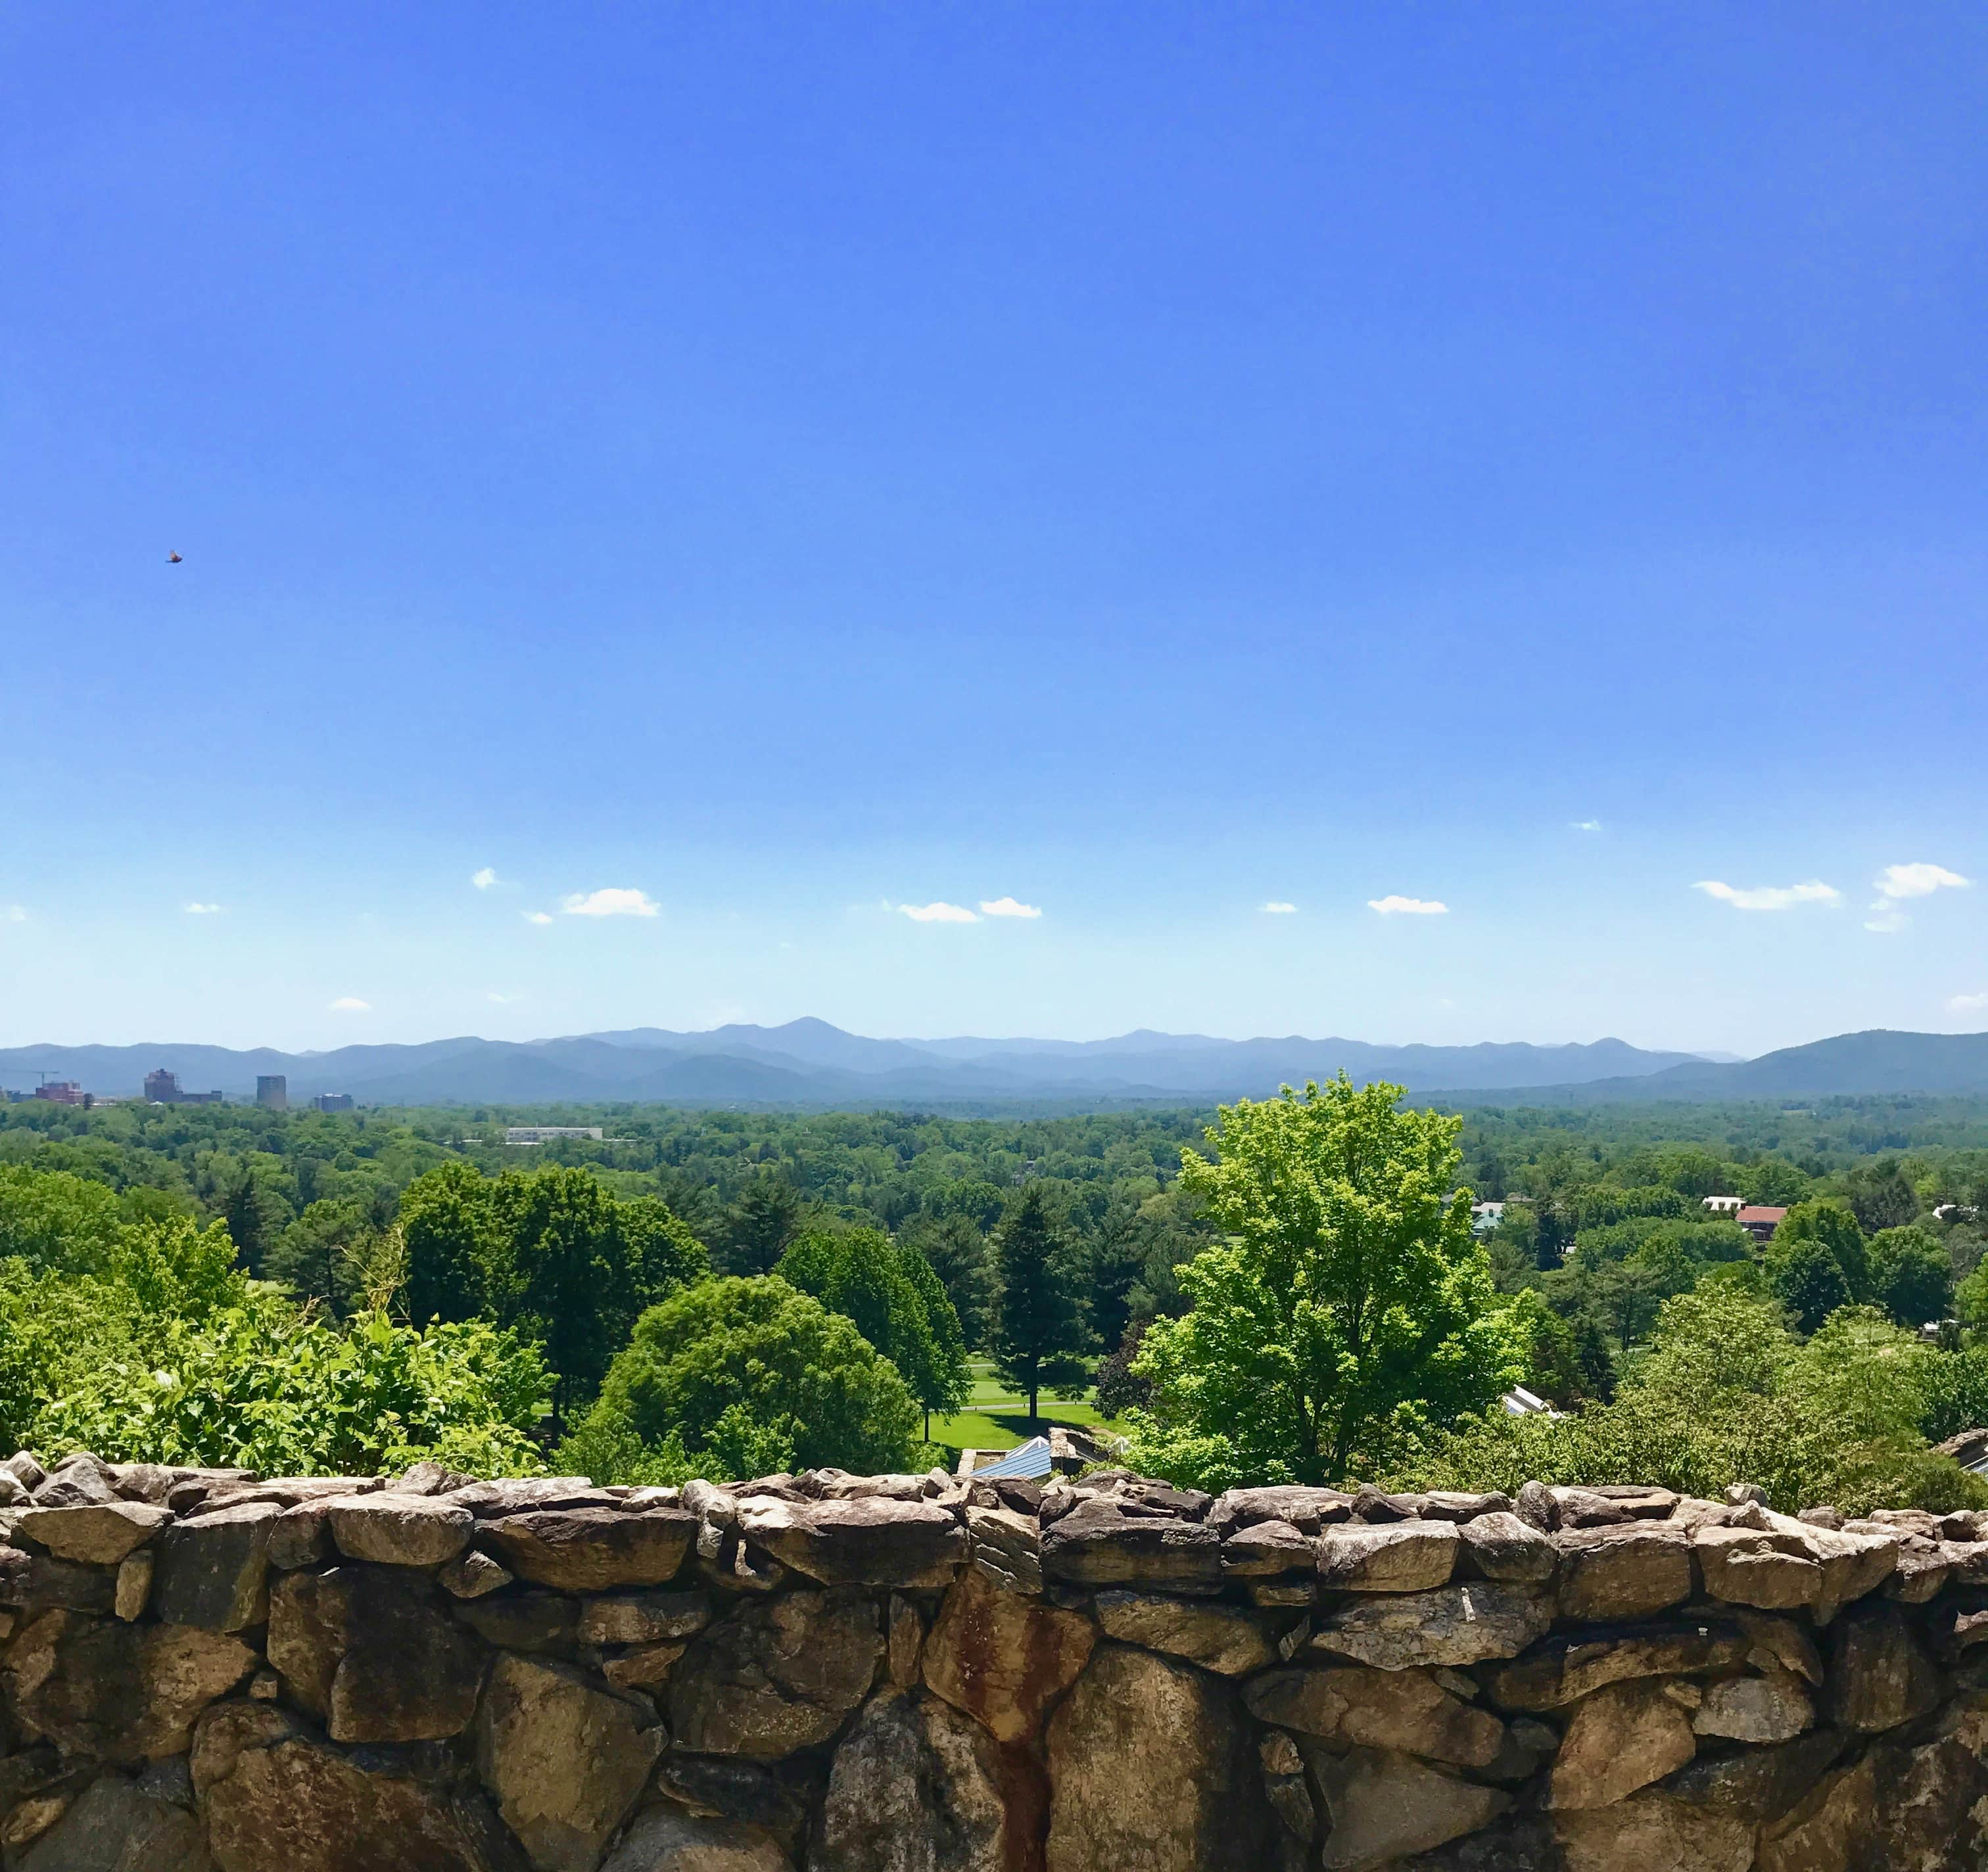 view from Grove Park Inn in Asheville, NC